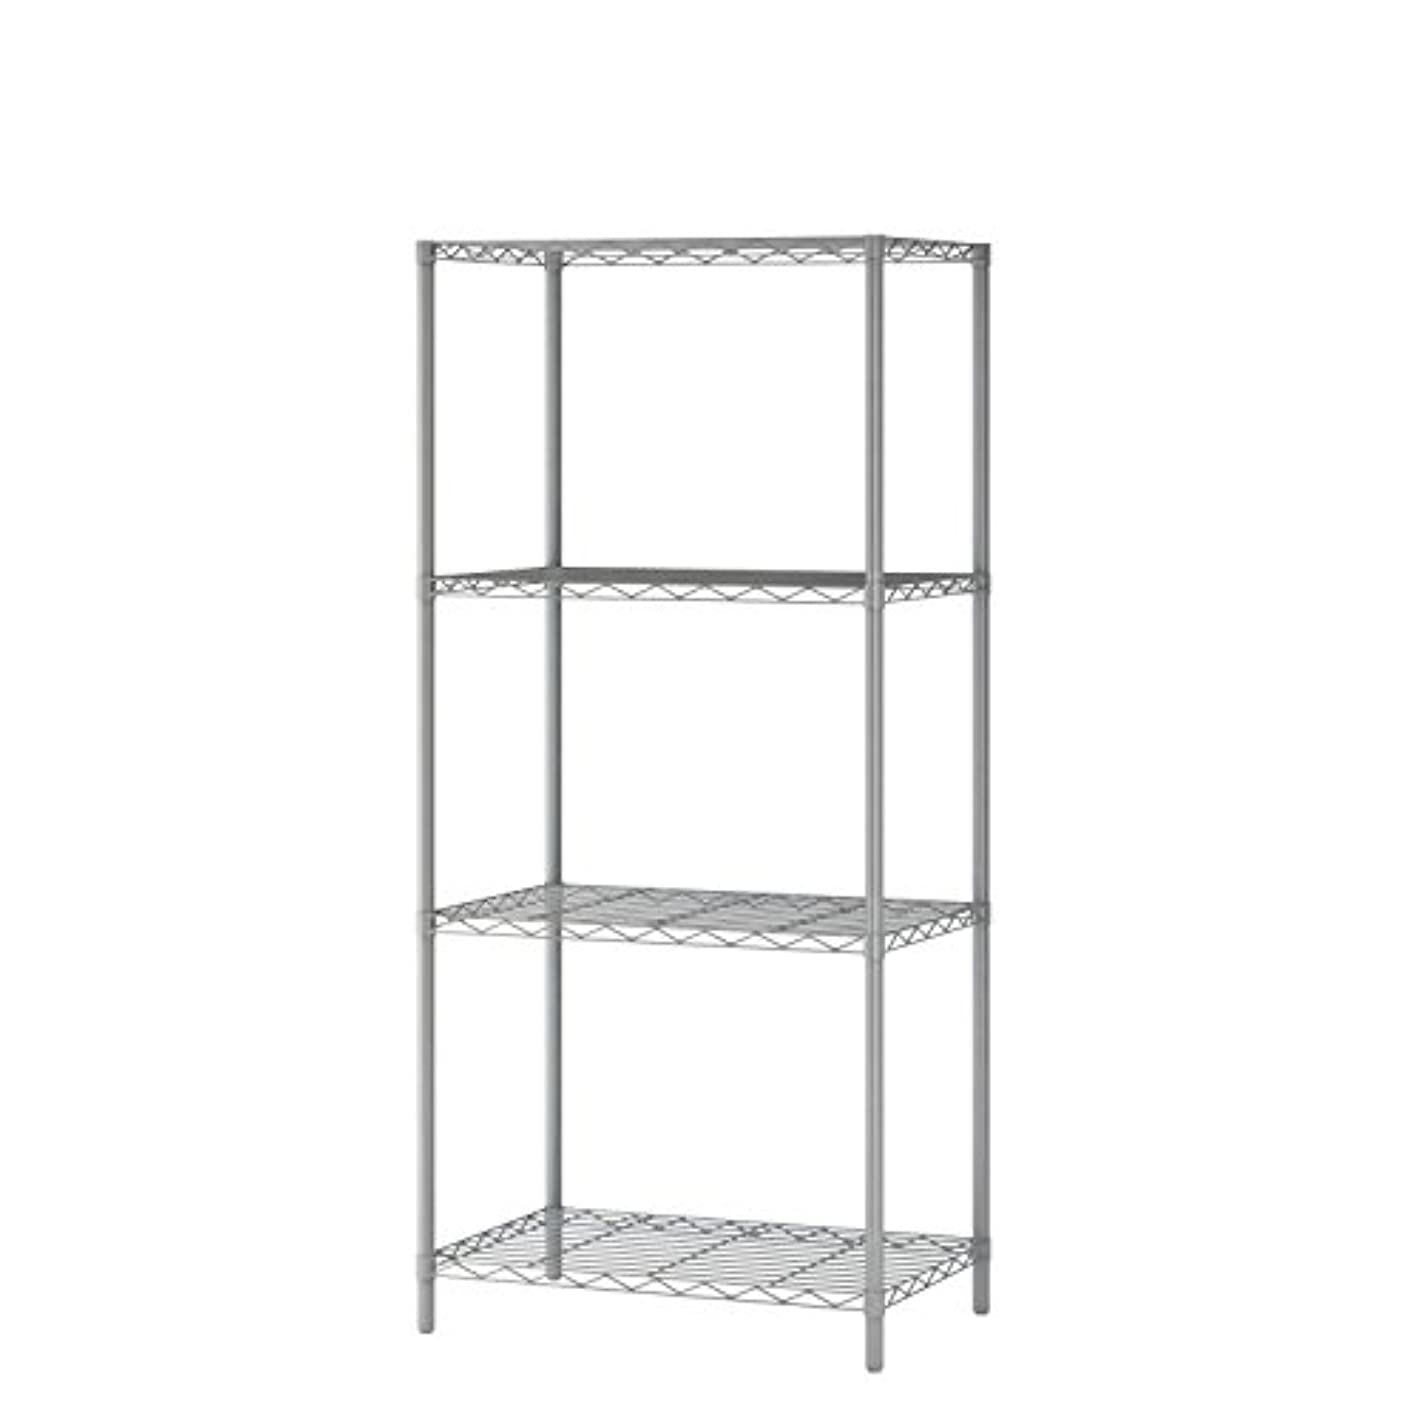 """Homebi 4-Tier Wire Shelving 4 Shelves Unit Metal Storage Rack Durable Organizer Perfect for Pantry Closet Kitchen Laundry Organization in Grey,21""""Wx14""""Dx46.5""""H"""